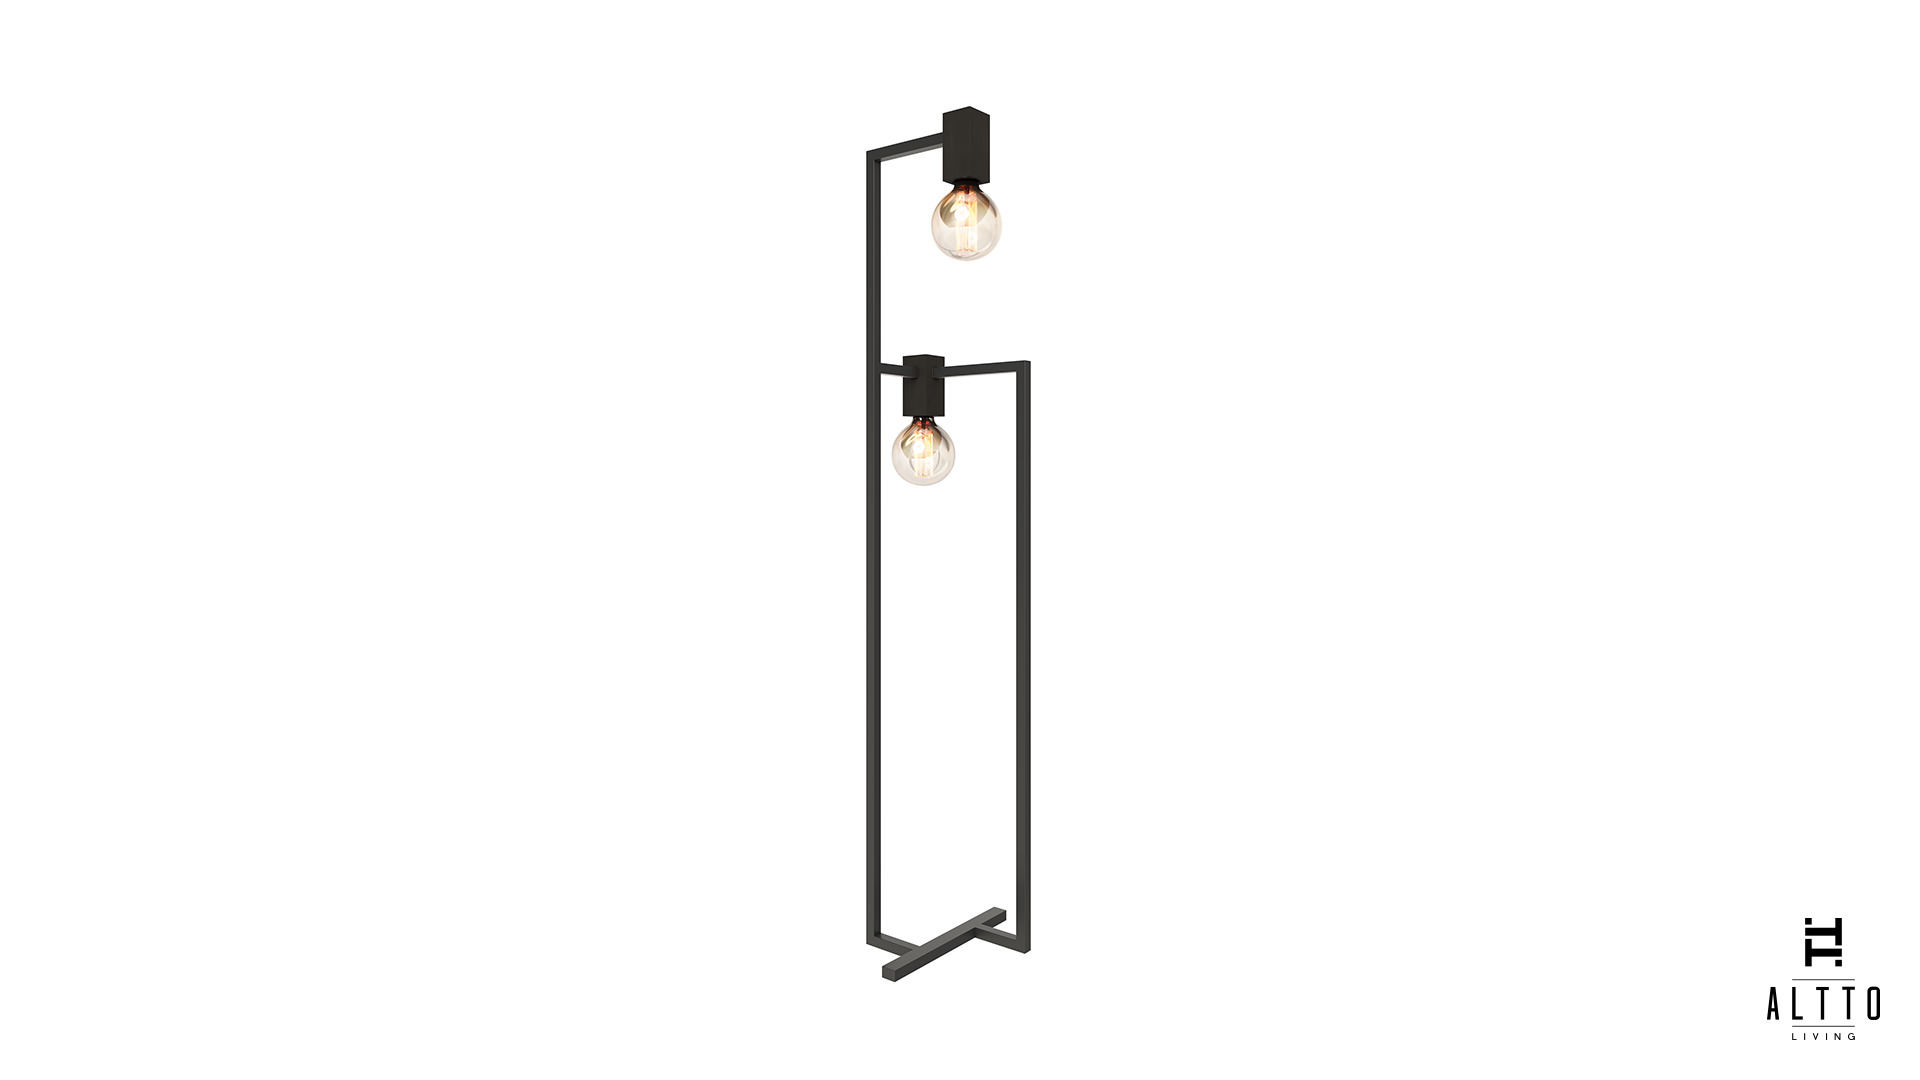 Altto sesame floor lamp modern and cosmopolitan lighting range altto sesame floor lamp modern and cosmopolitan lighting range with high quality finishes aloadofball Gallery